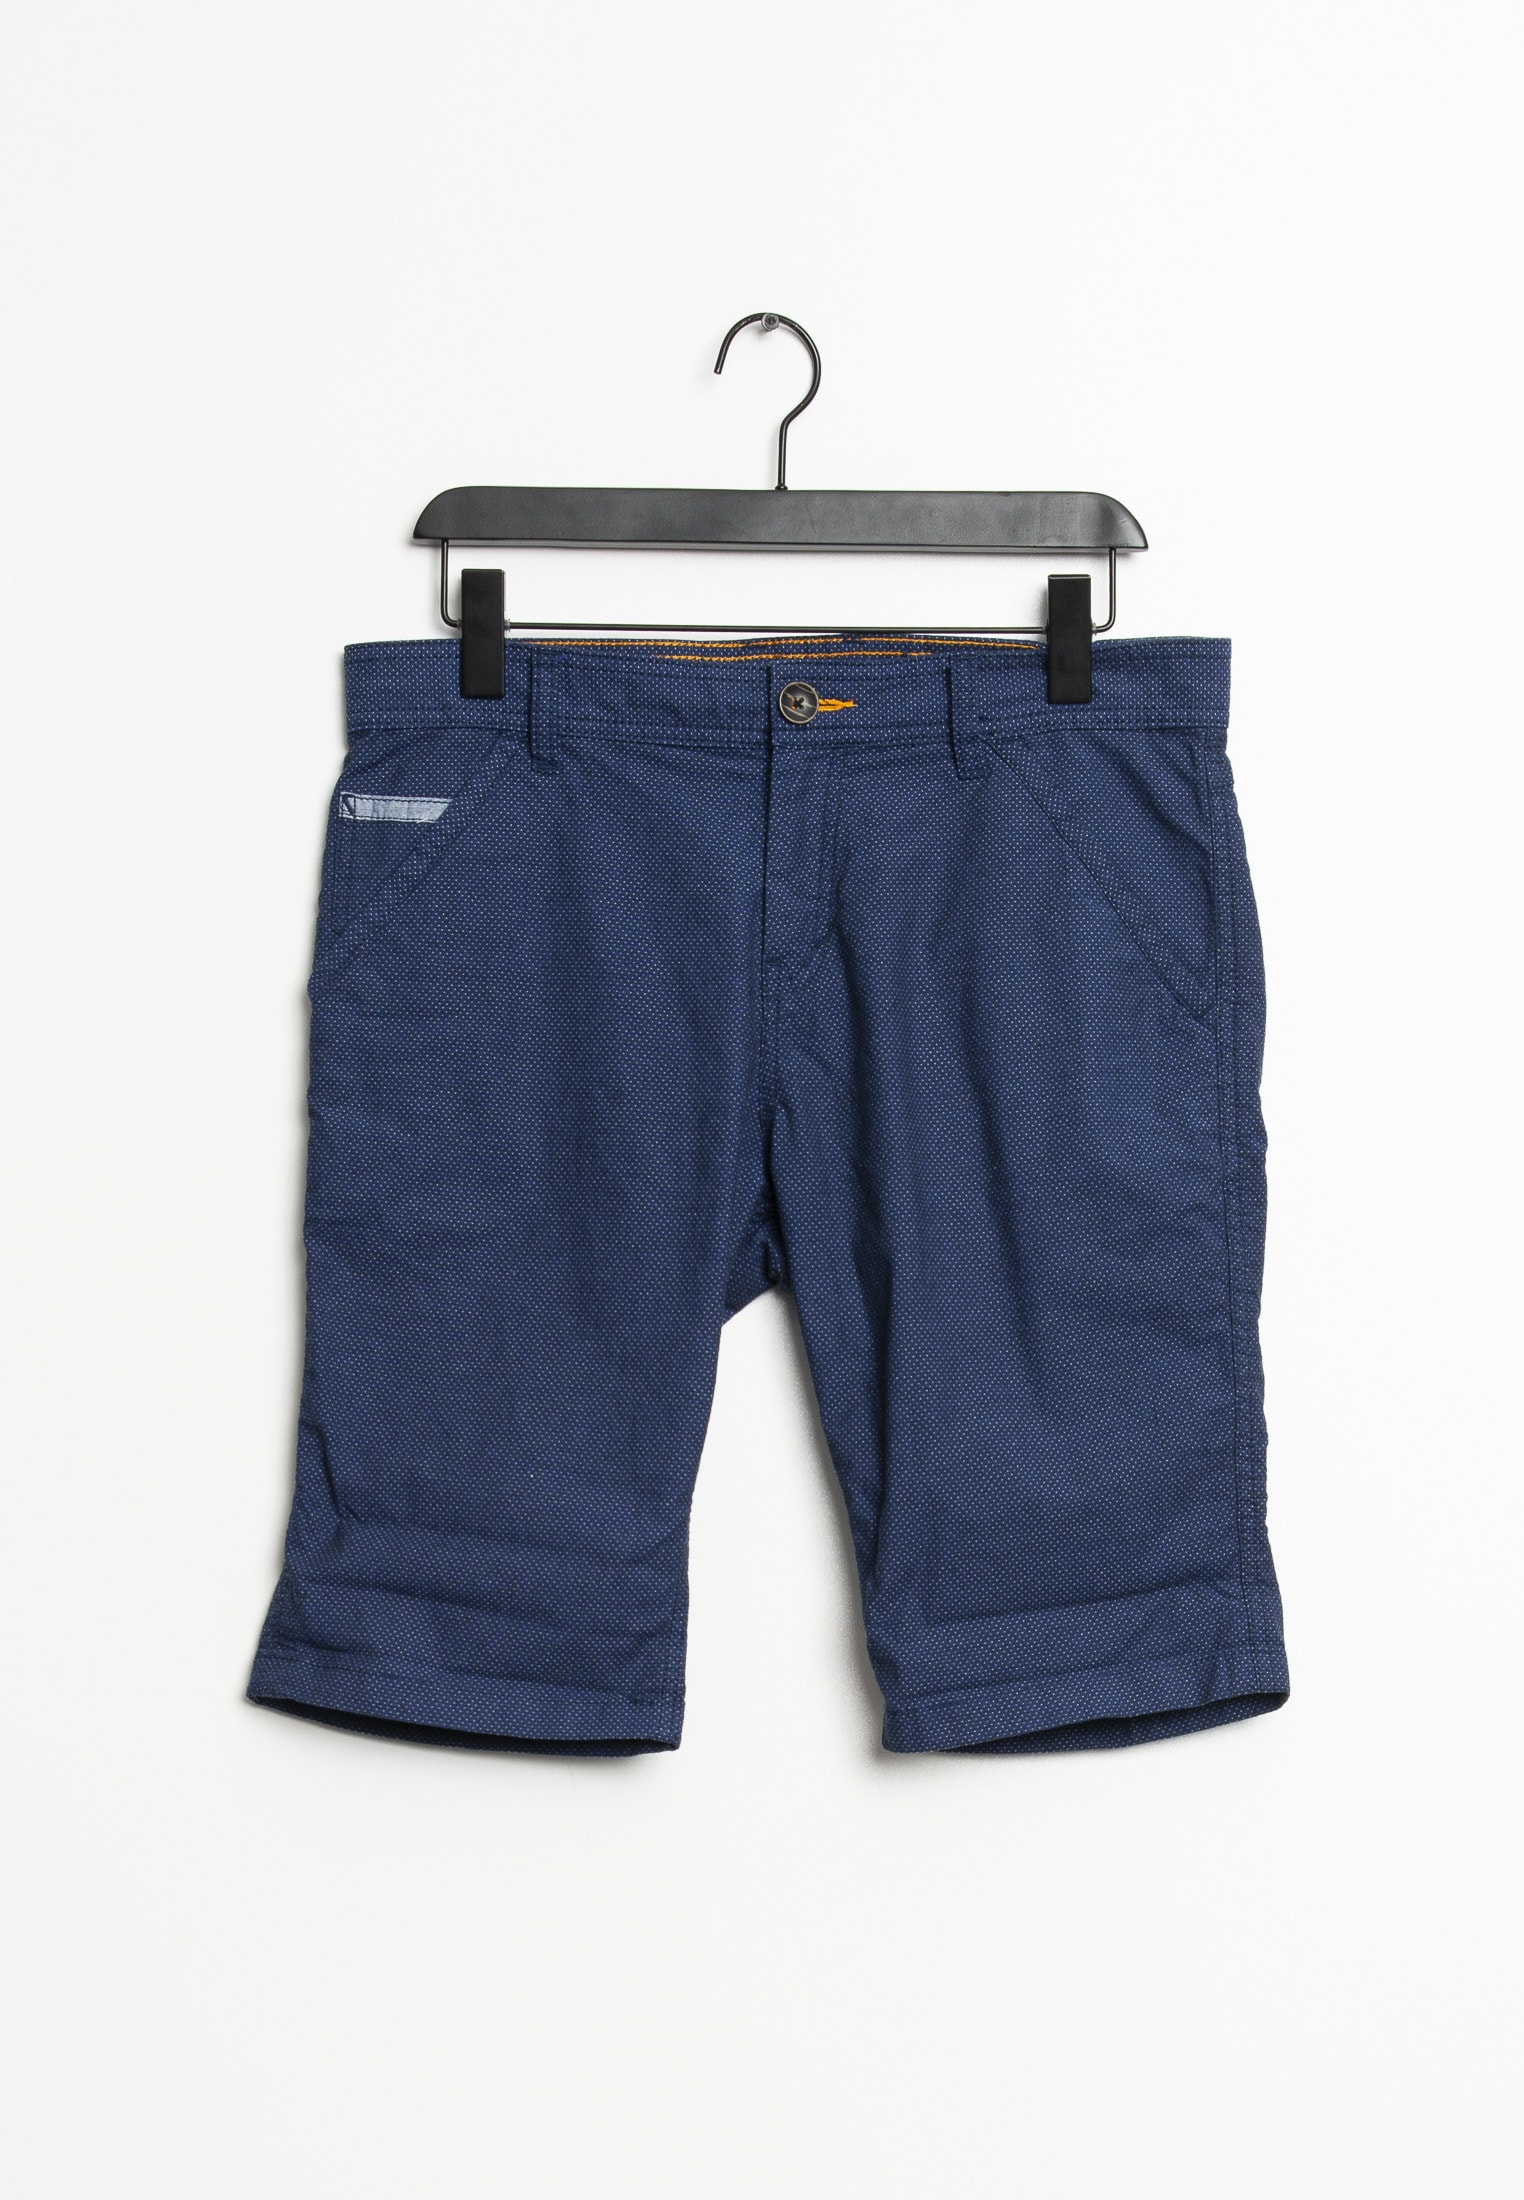 TOM TAILOR Shorts Blau Gr.30